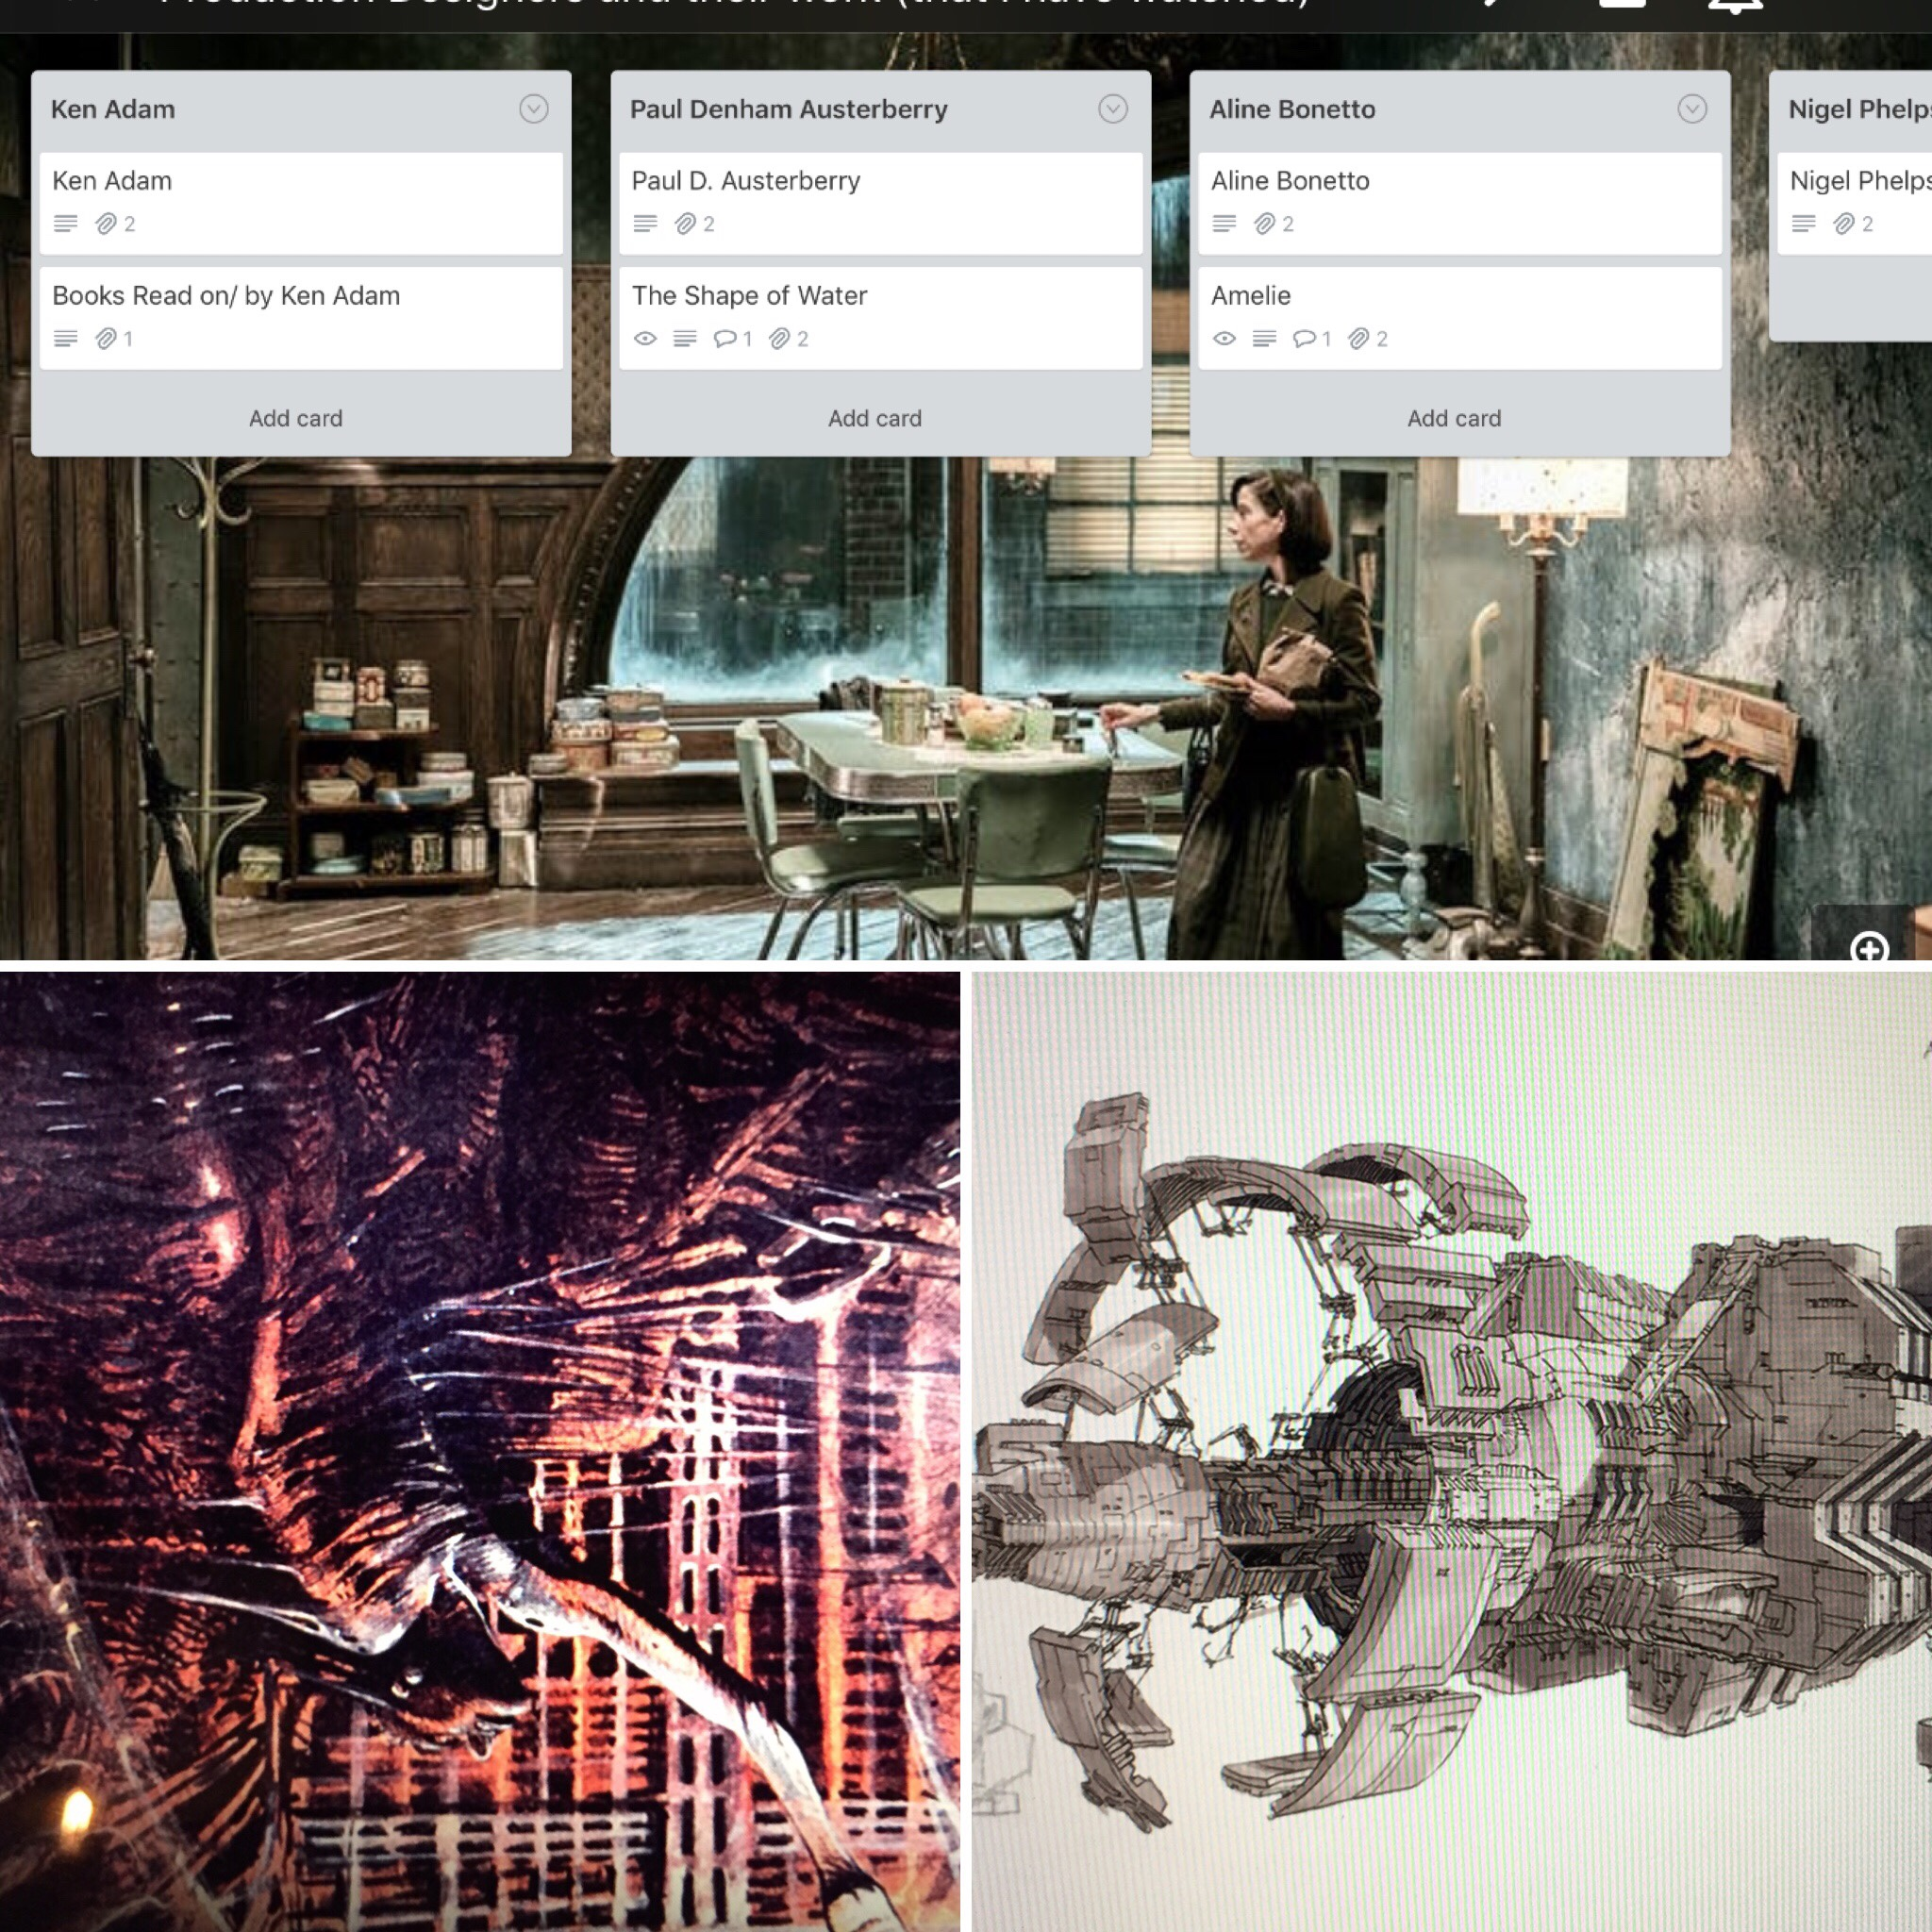 July 10/19 - Production design research on Trello and watched Alien Resurrection and extras. More work on workshop, transferring docs to iCloud from desktop.